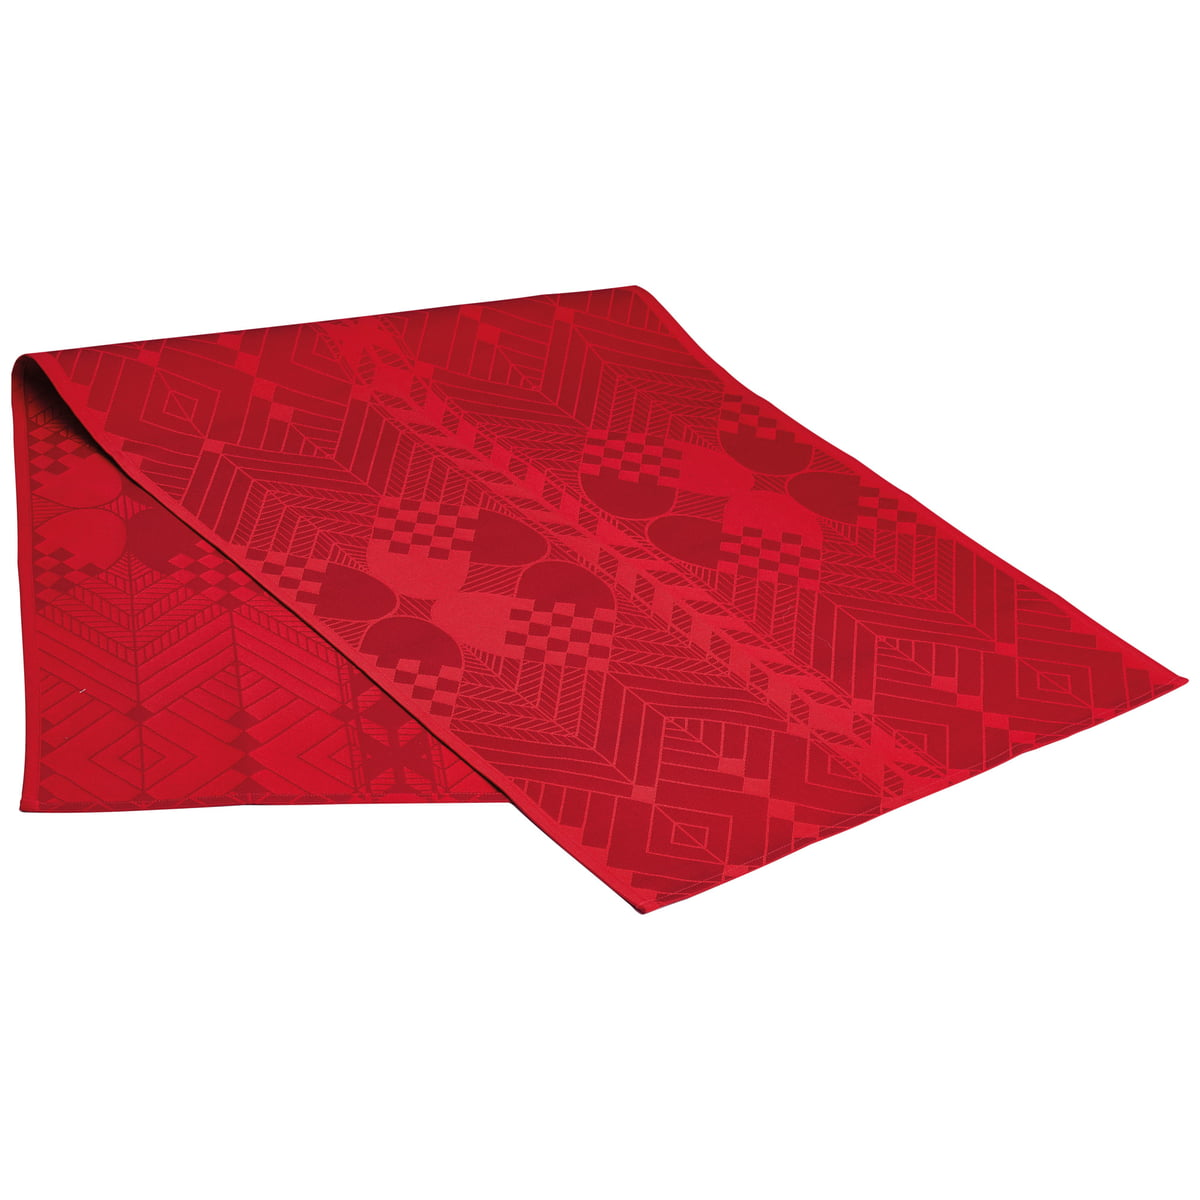 Christmas Table Runner Uk.Georg Jensen Damask Christmas Table Runner 50 X 140 Cm Deep Red